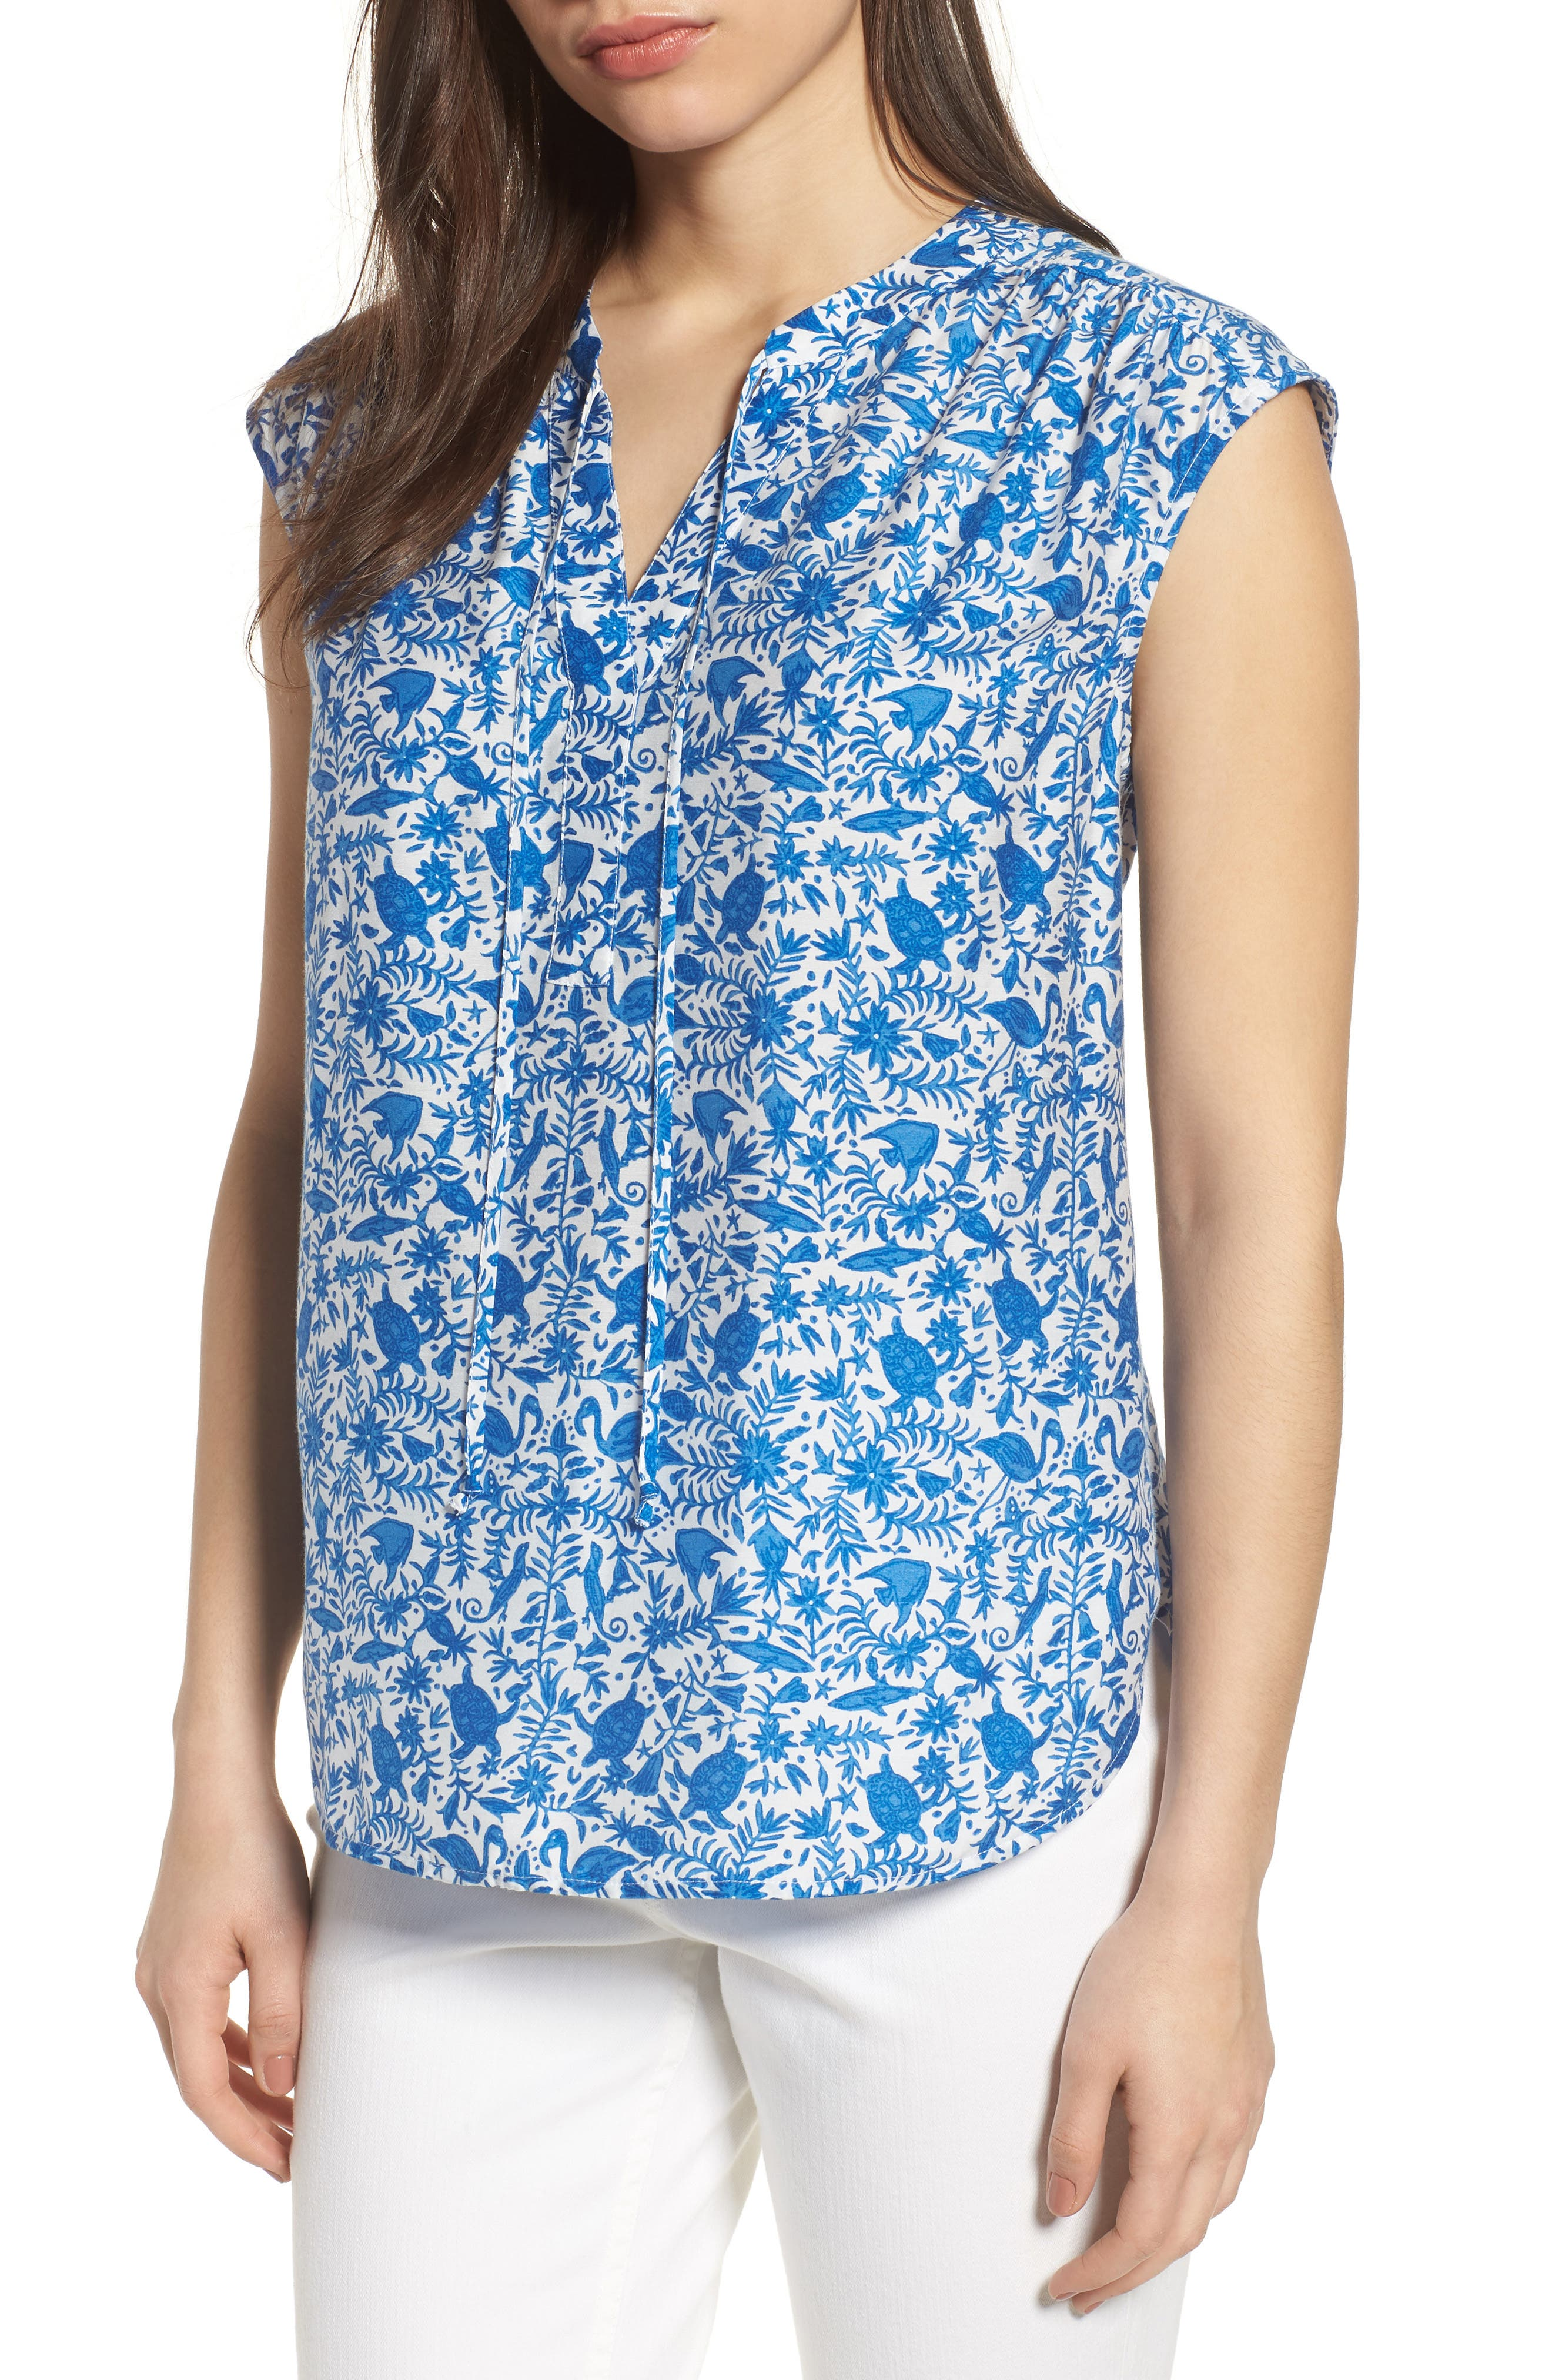 Bahamas Otomi Sleeveless Cotton Top,                         Main,                         color, 413